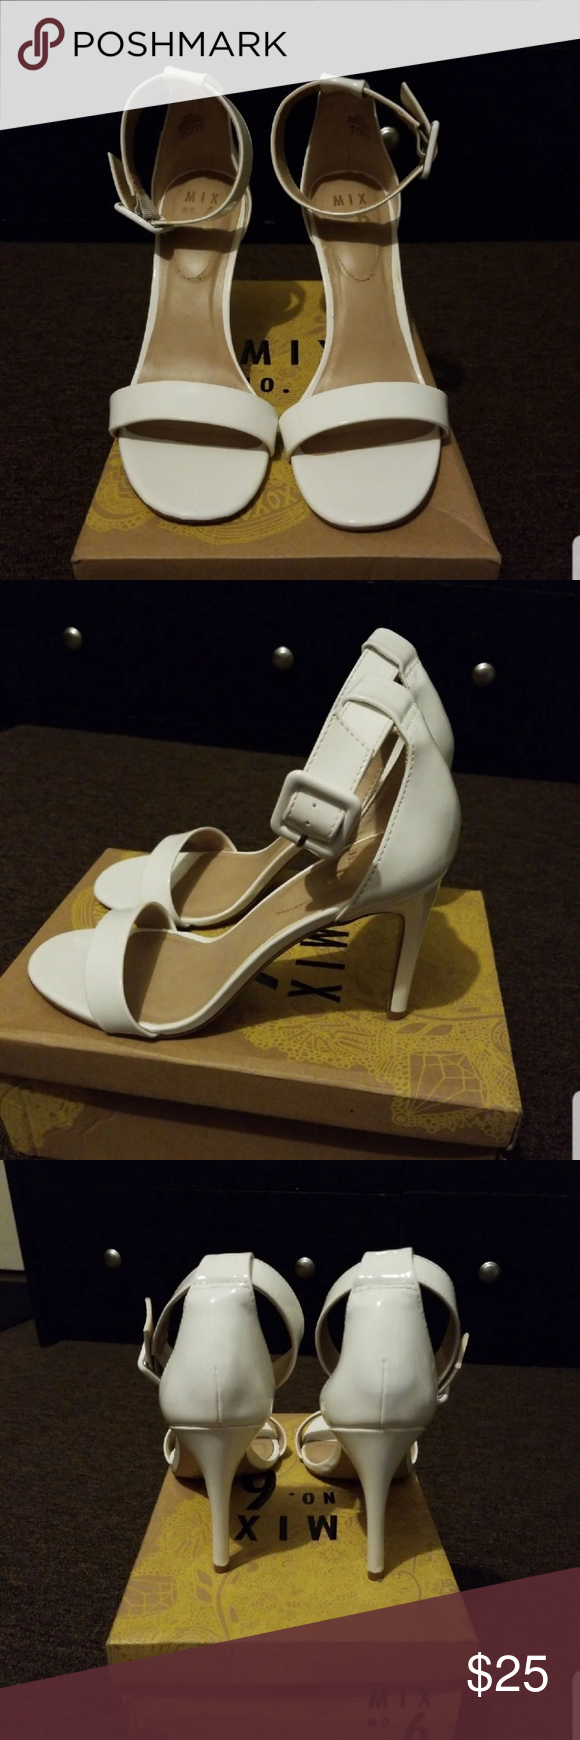 b52bd47fa13c DSW Mix No.6 Lole Heels Only wore once Dsw Mix No.6 Lole